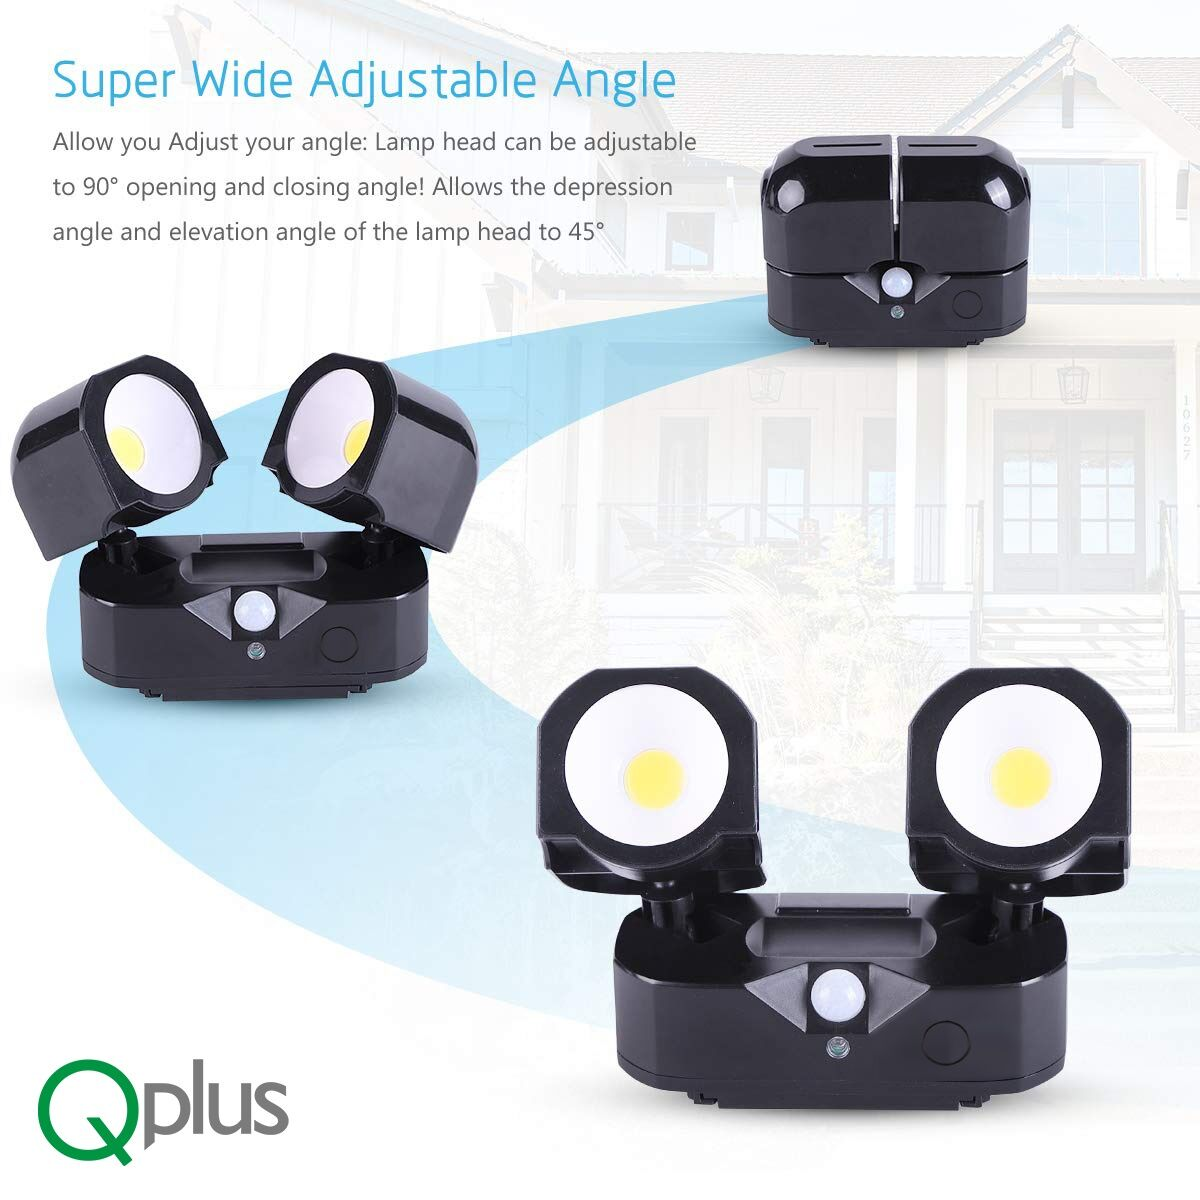 QPlus Motion Sensor Outdoor Spot Security Light for Garage/Shed/Backyard- Black Finish